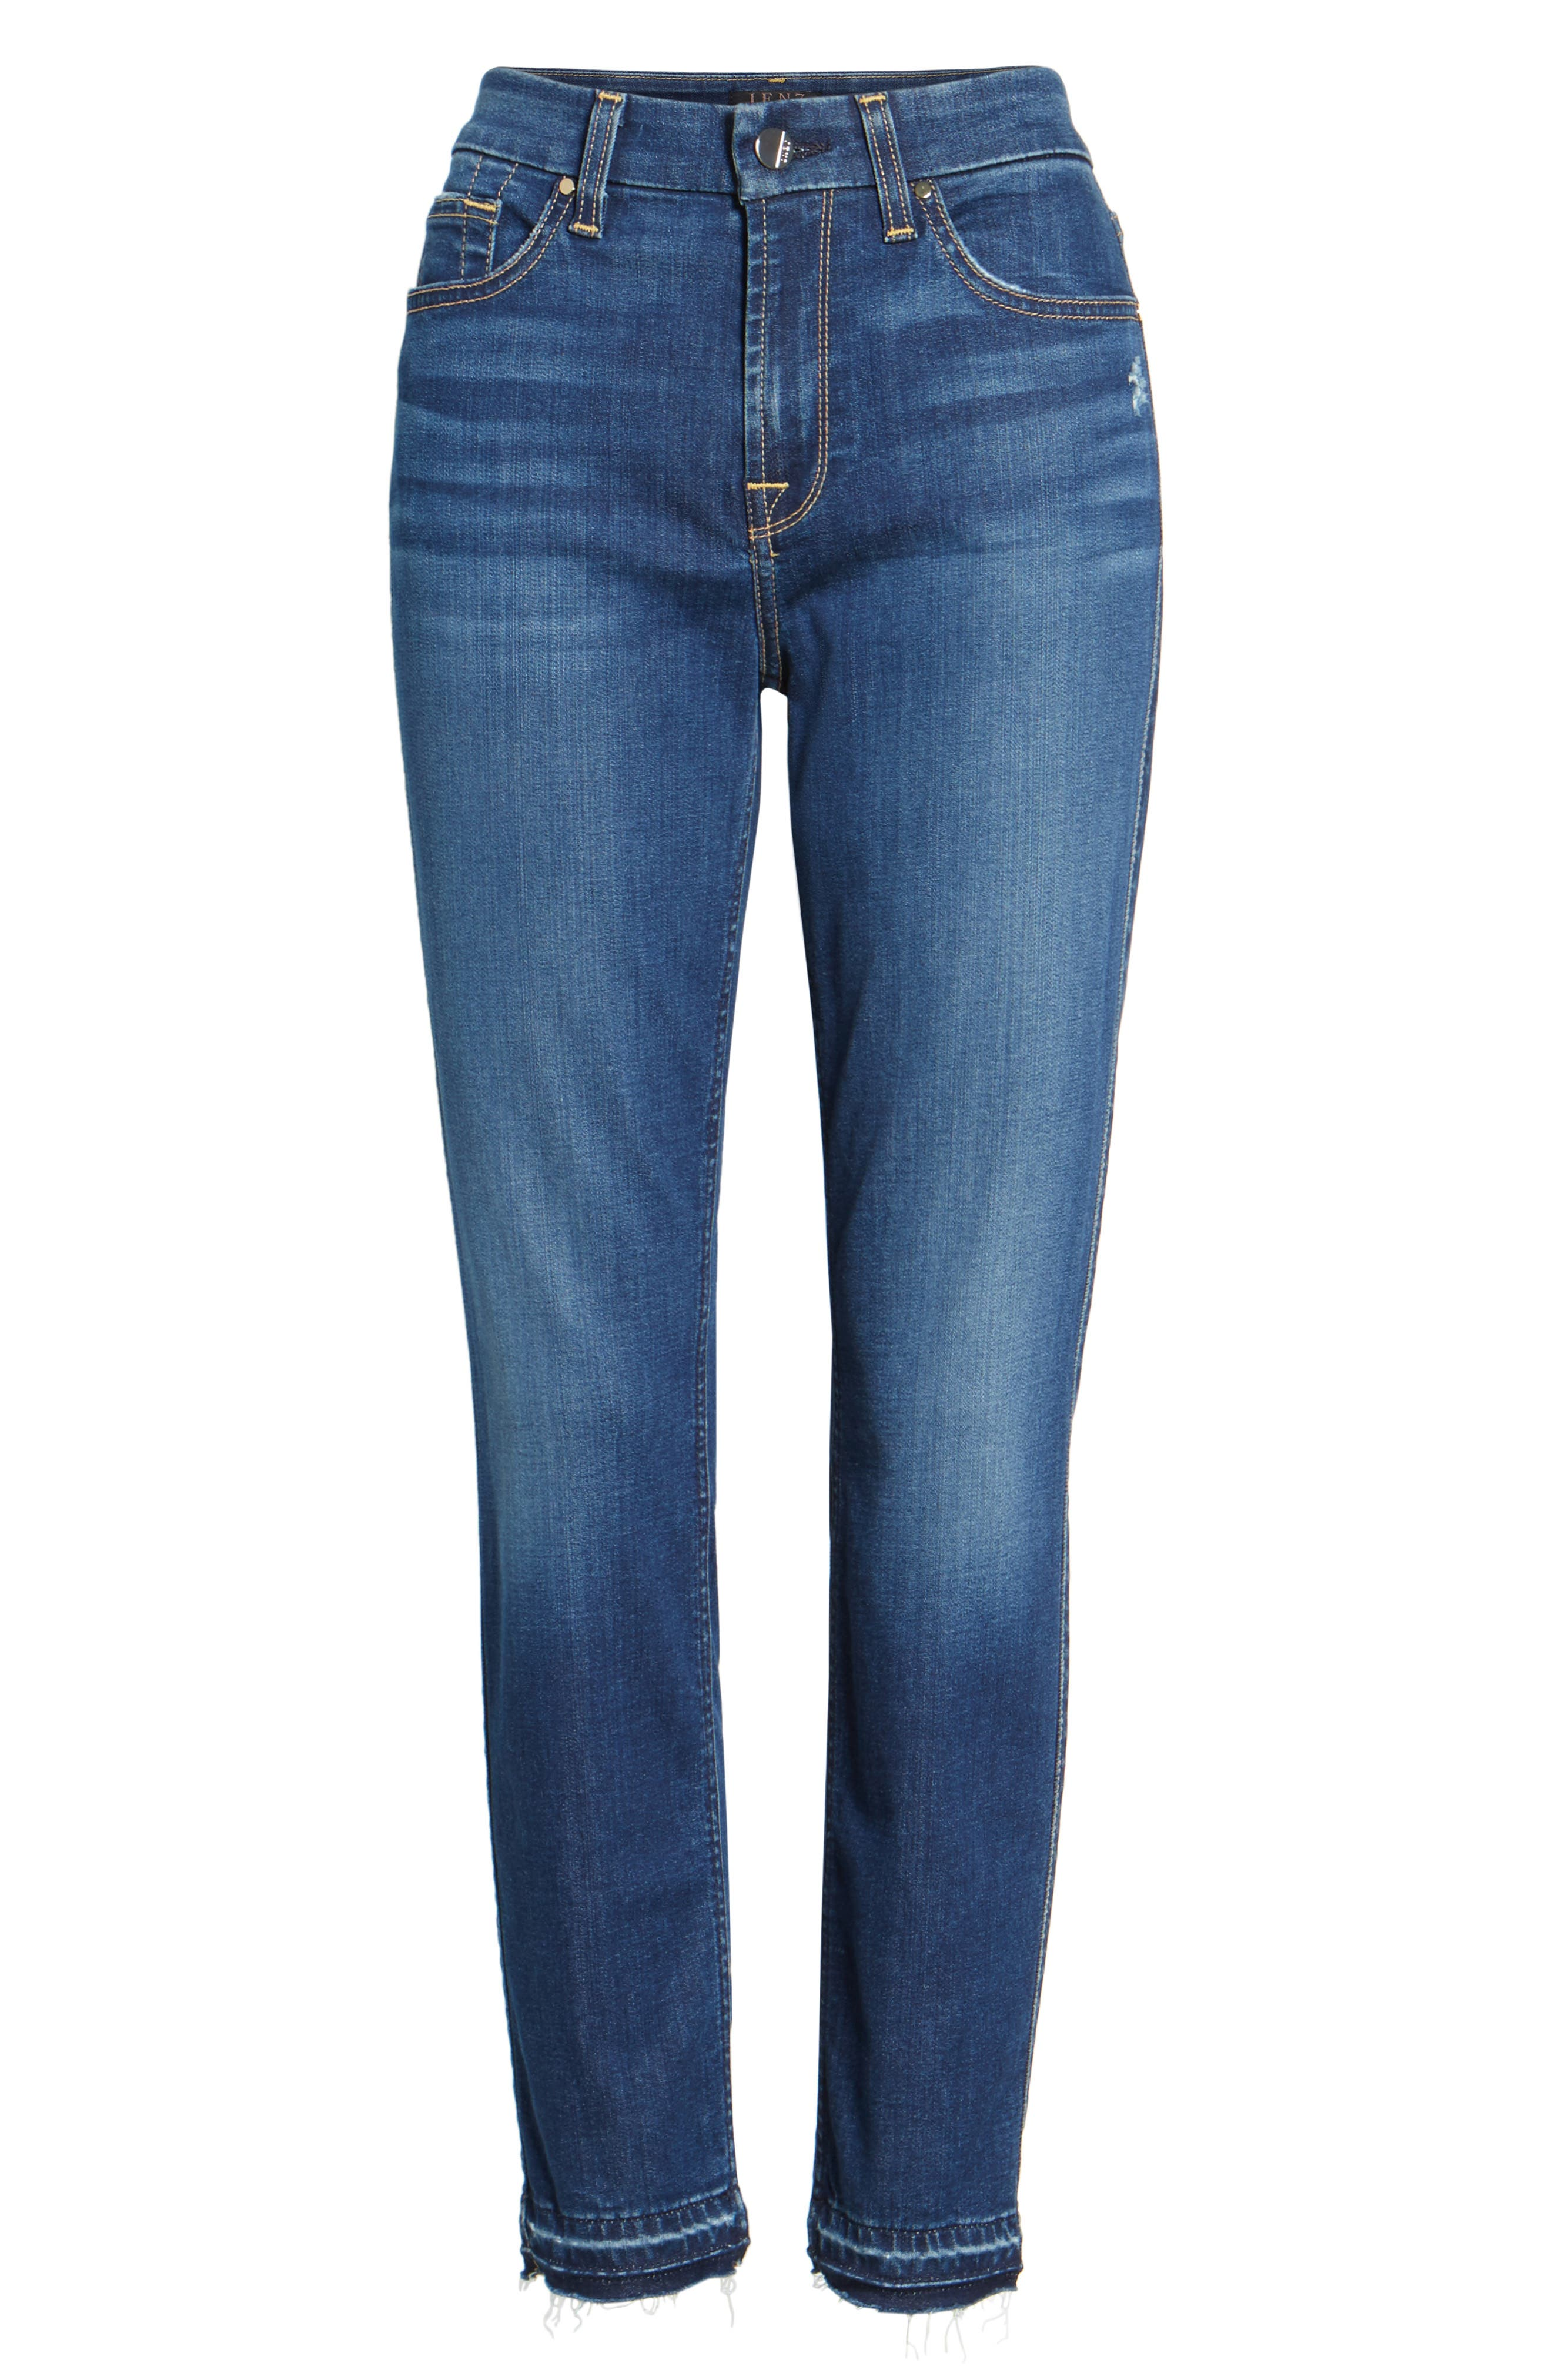 Release Hem Skinny Ankle Jeans,                             Alternate thumbnail 6, color,                             Riche Touch Medium Blue